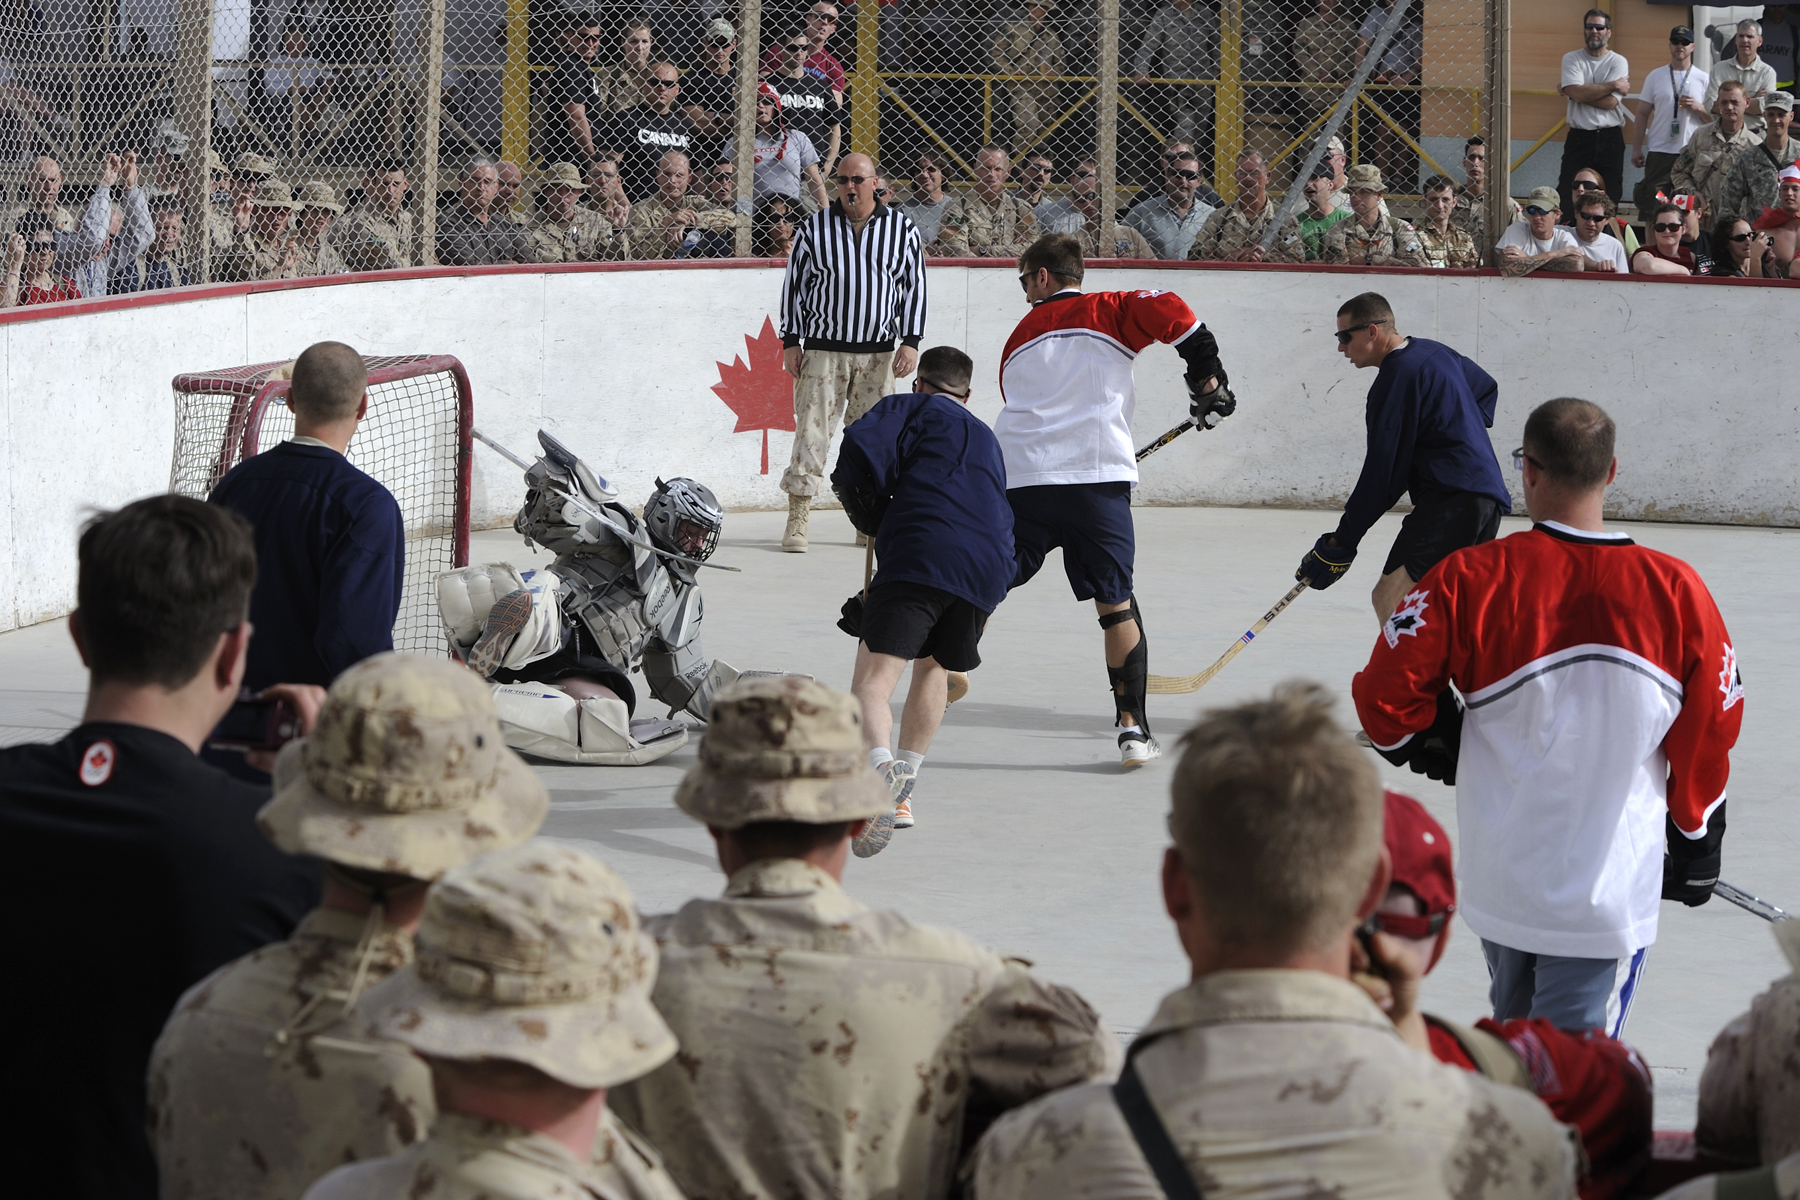 American and Canadian troops play Hockey at Kandahar Airfield, Feb 2010